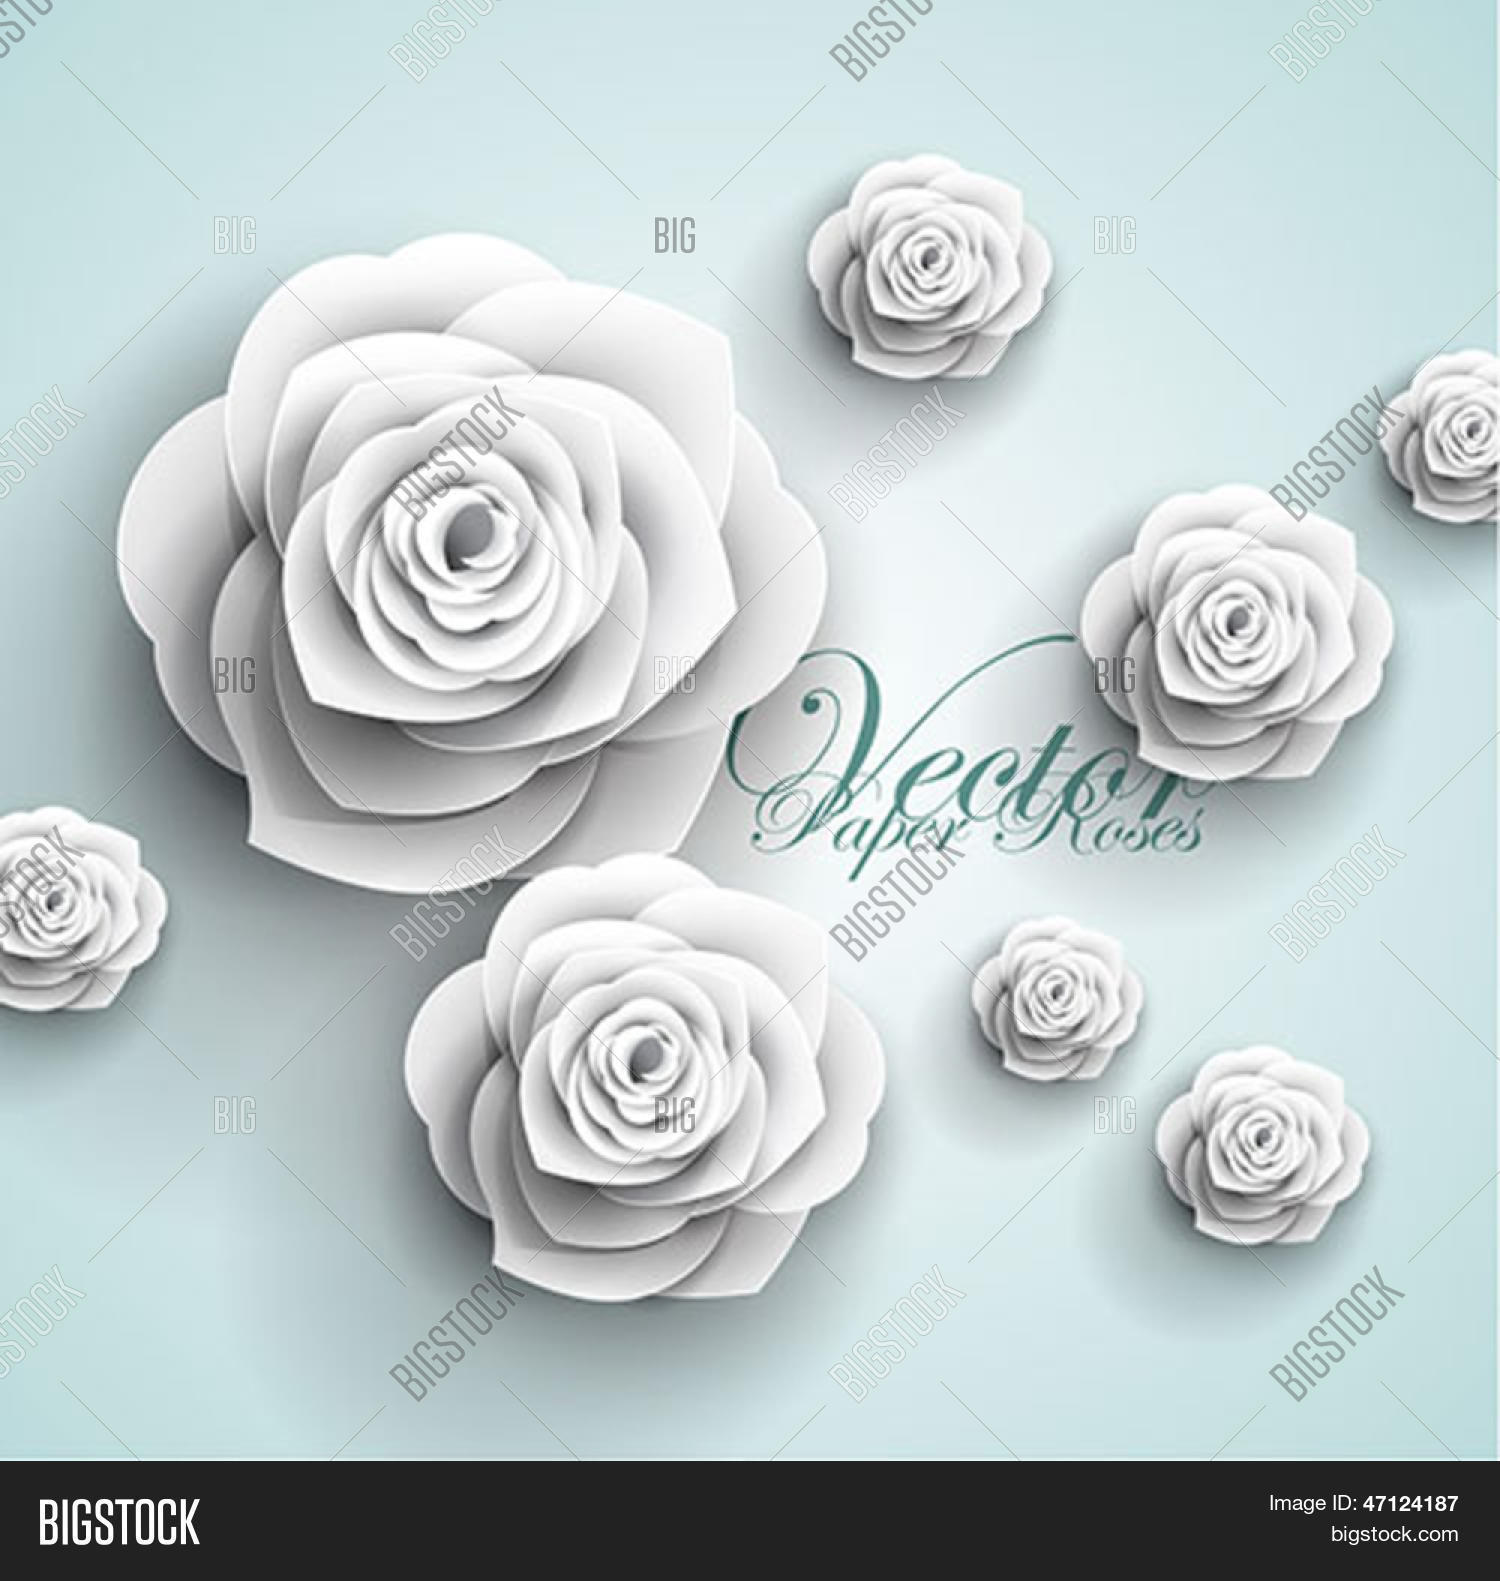 3d Paper Rose Flowers Vector Photo Free Trial Bigstock